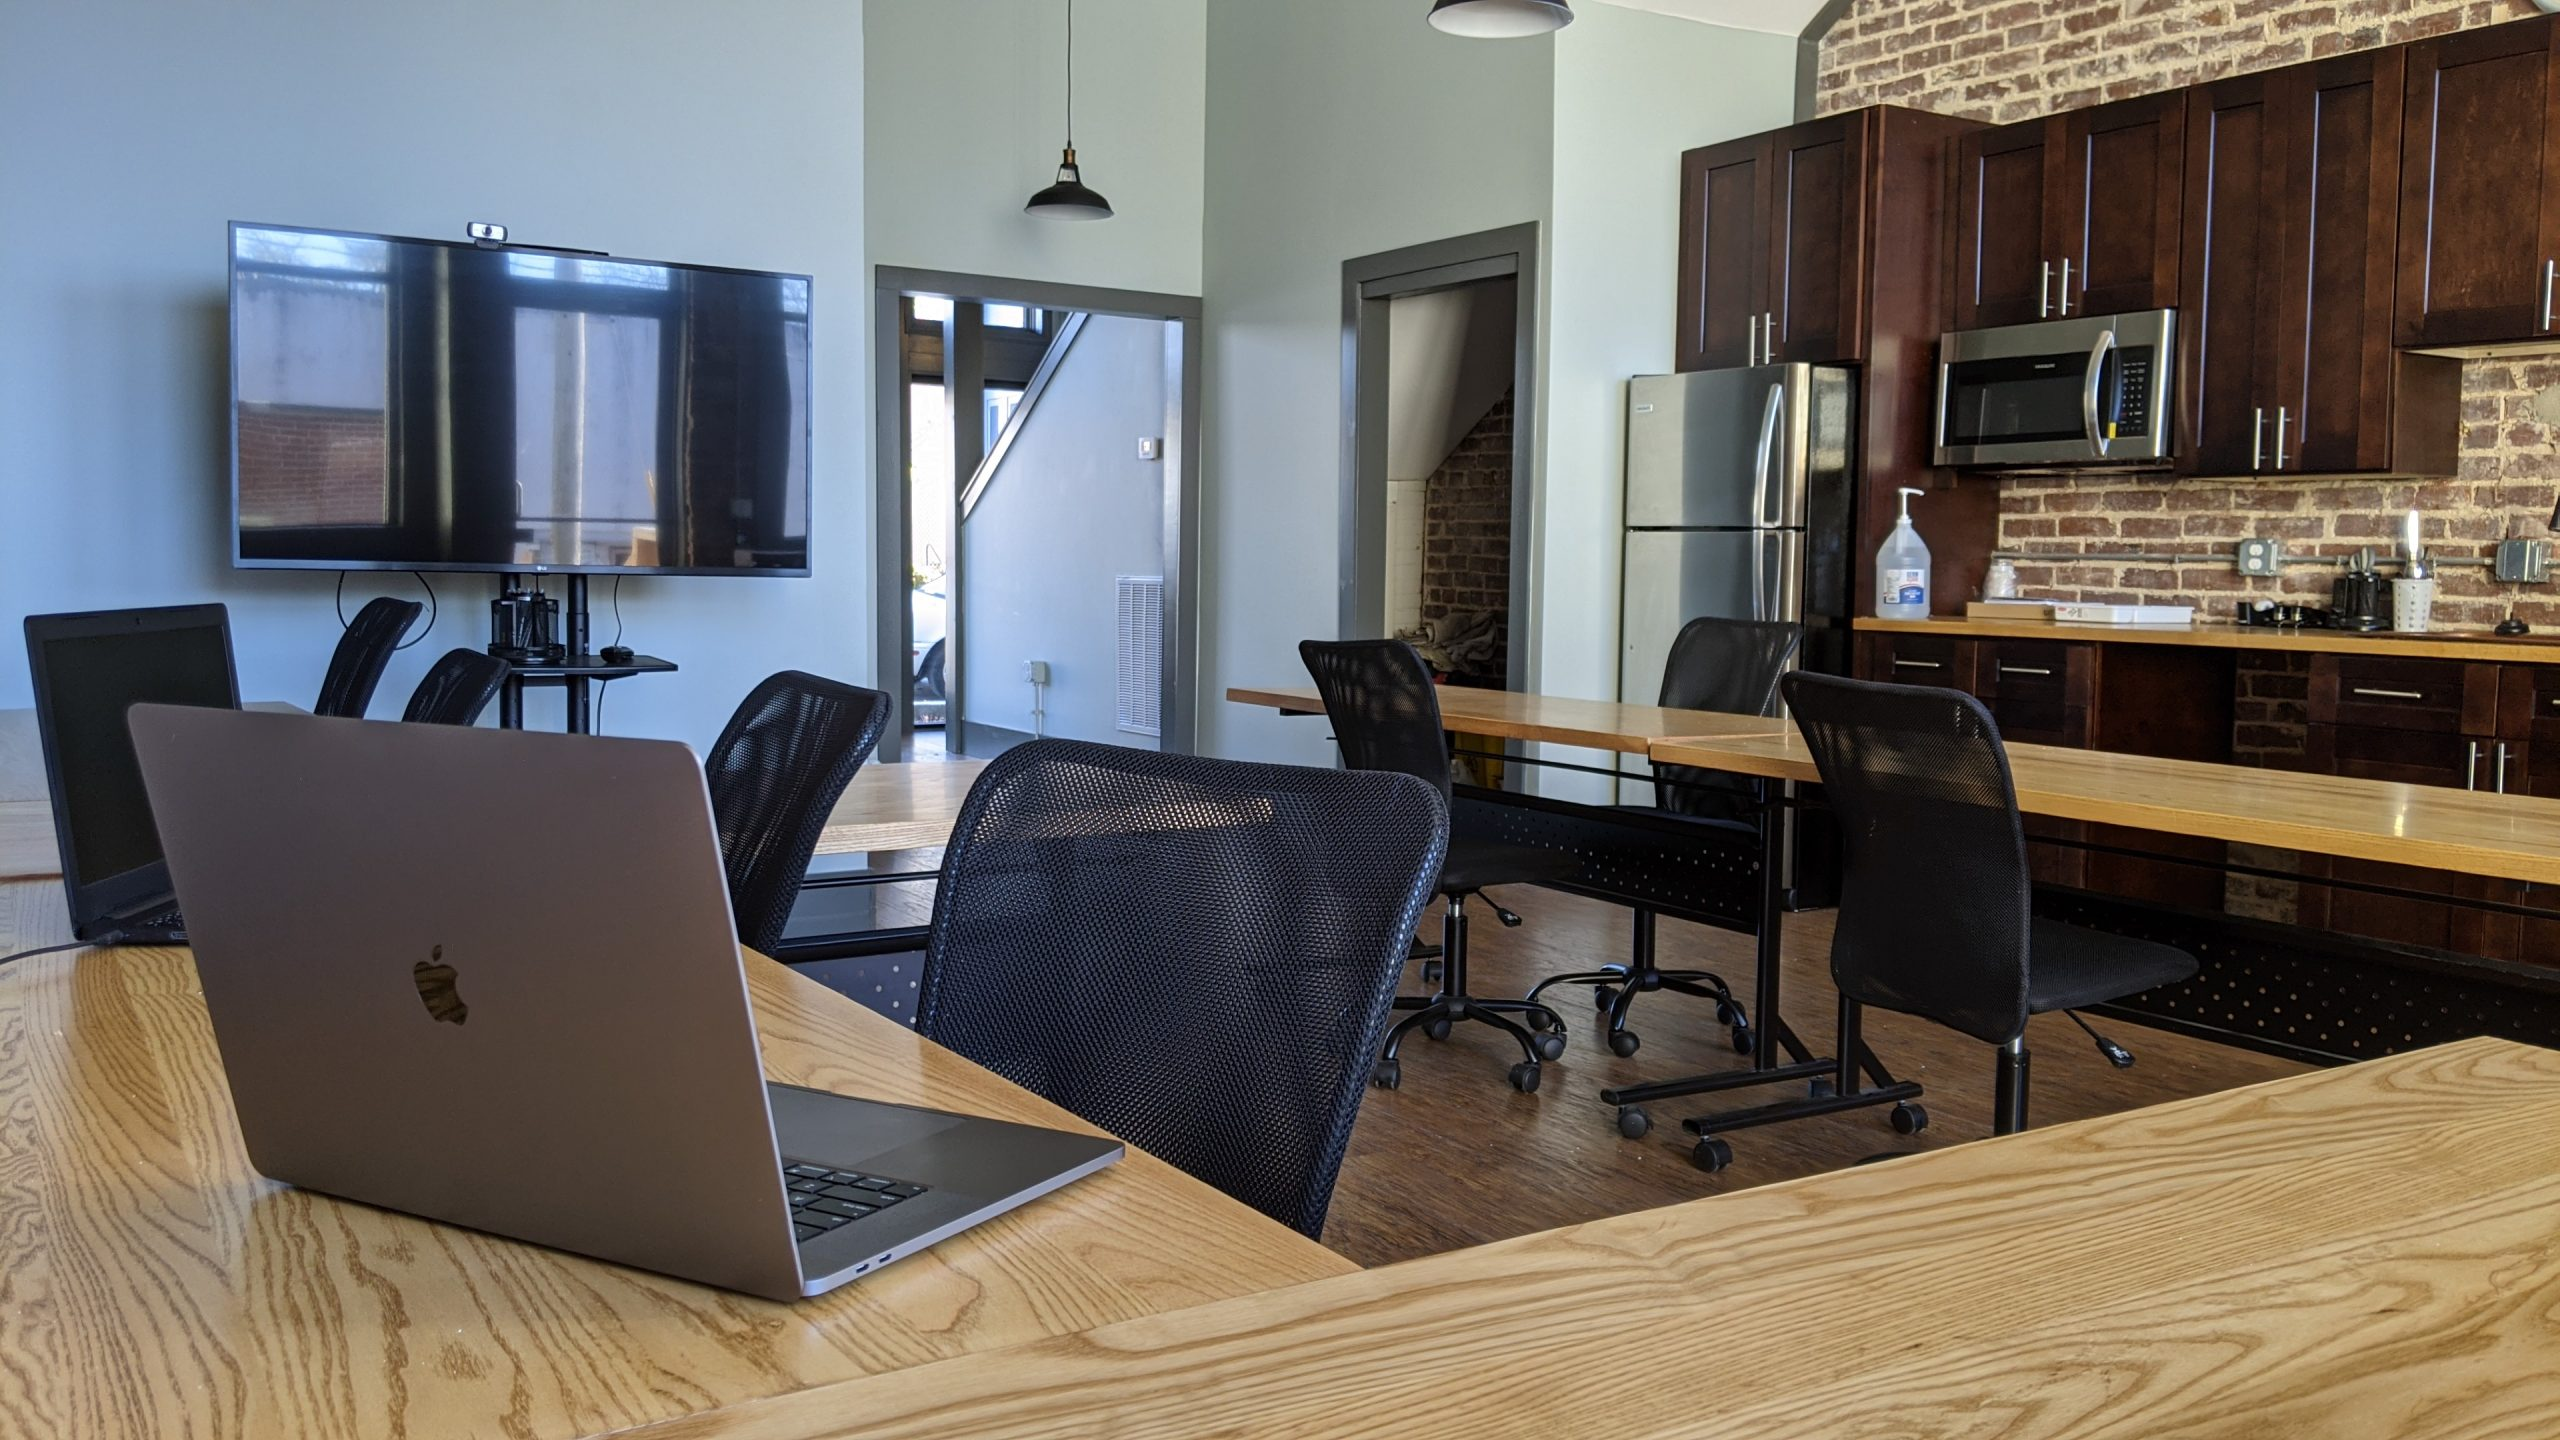 Picture of a coworking space with wooden tables, white walls, and a kitchenette.